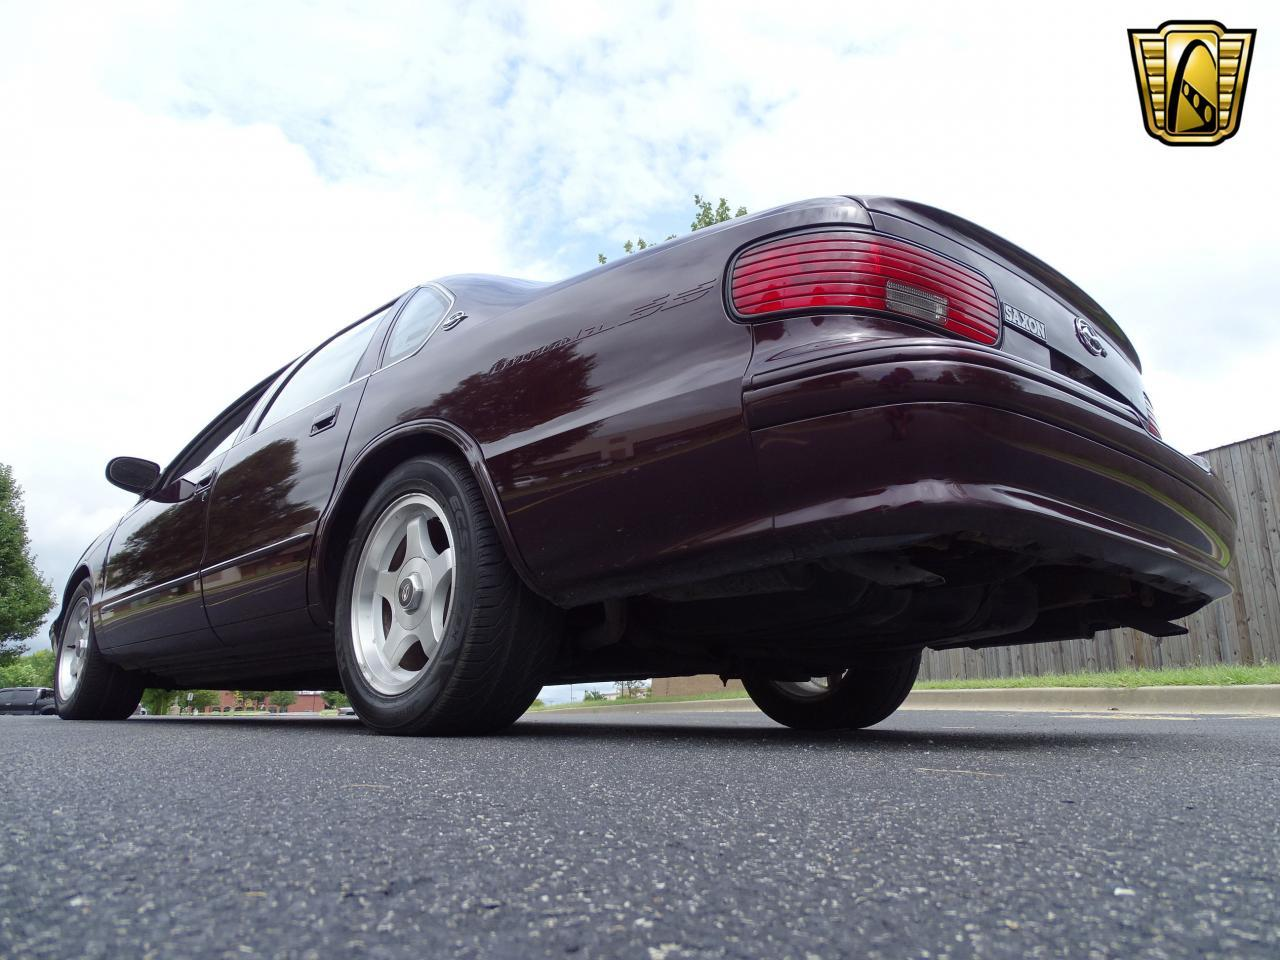 Large Picture of 1996 Impala located in O'Fallon Illinois Offered by Gateway Classic Cars - St. Louis - QB5K